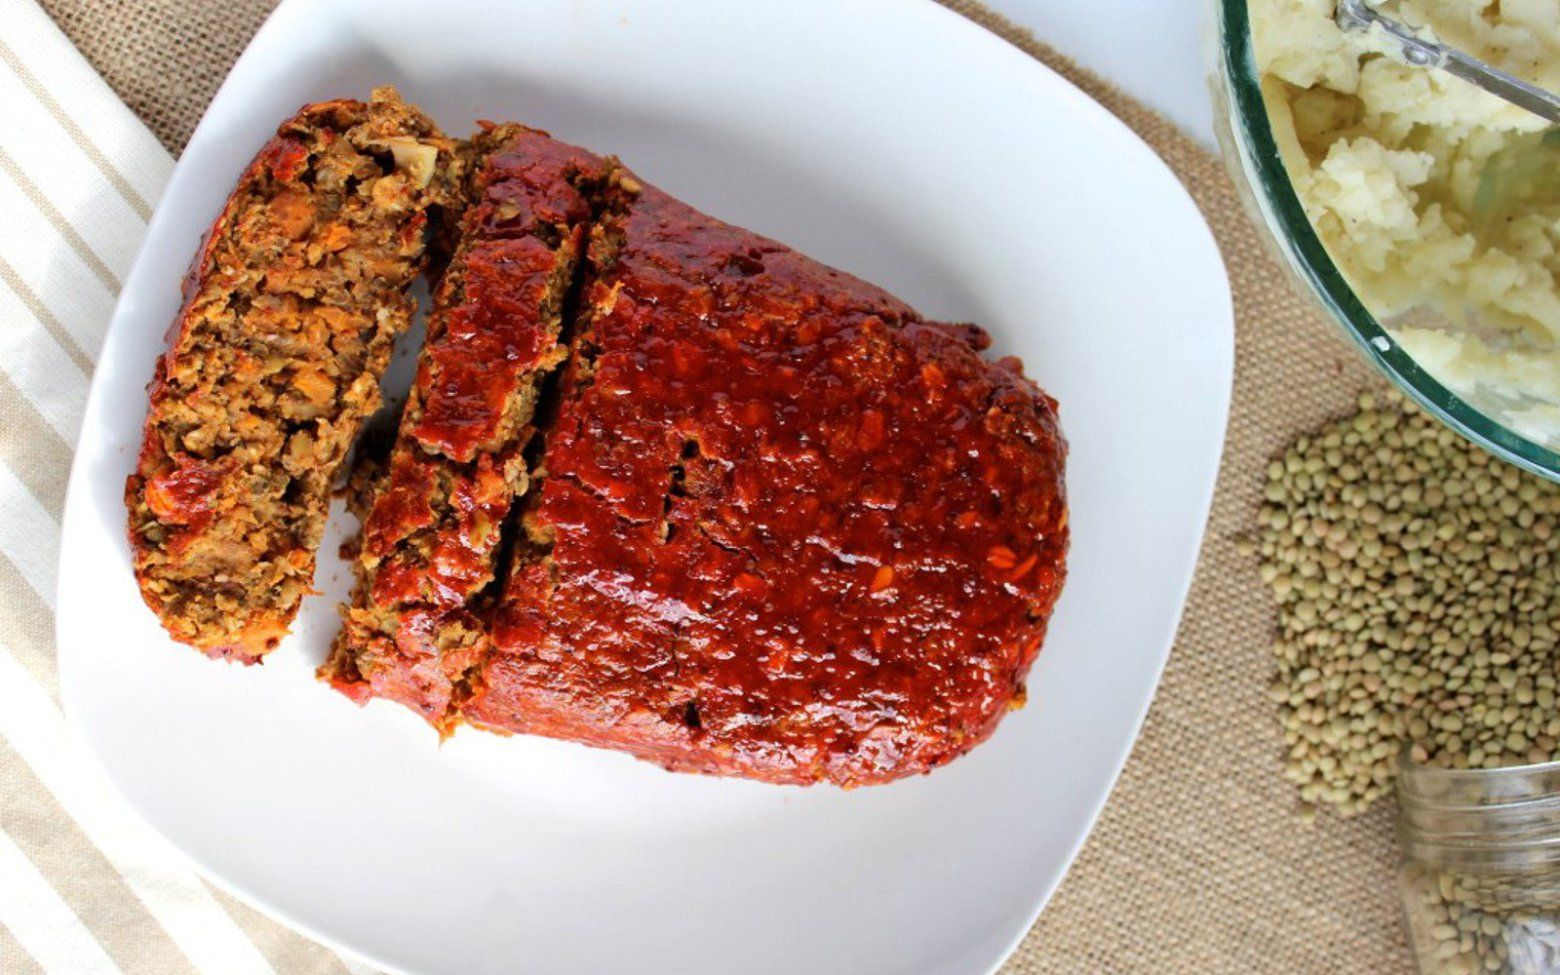 A traditional mushroom lentil loaf with a maple ketchup